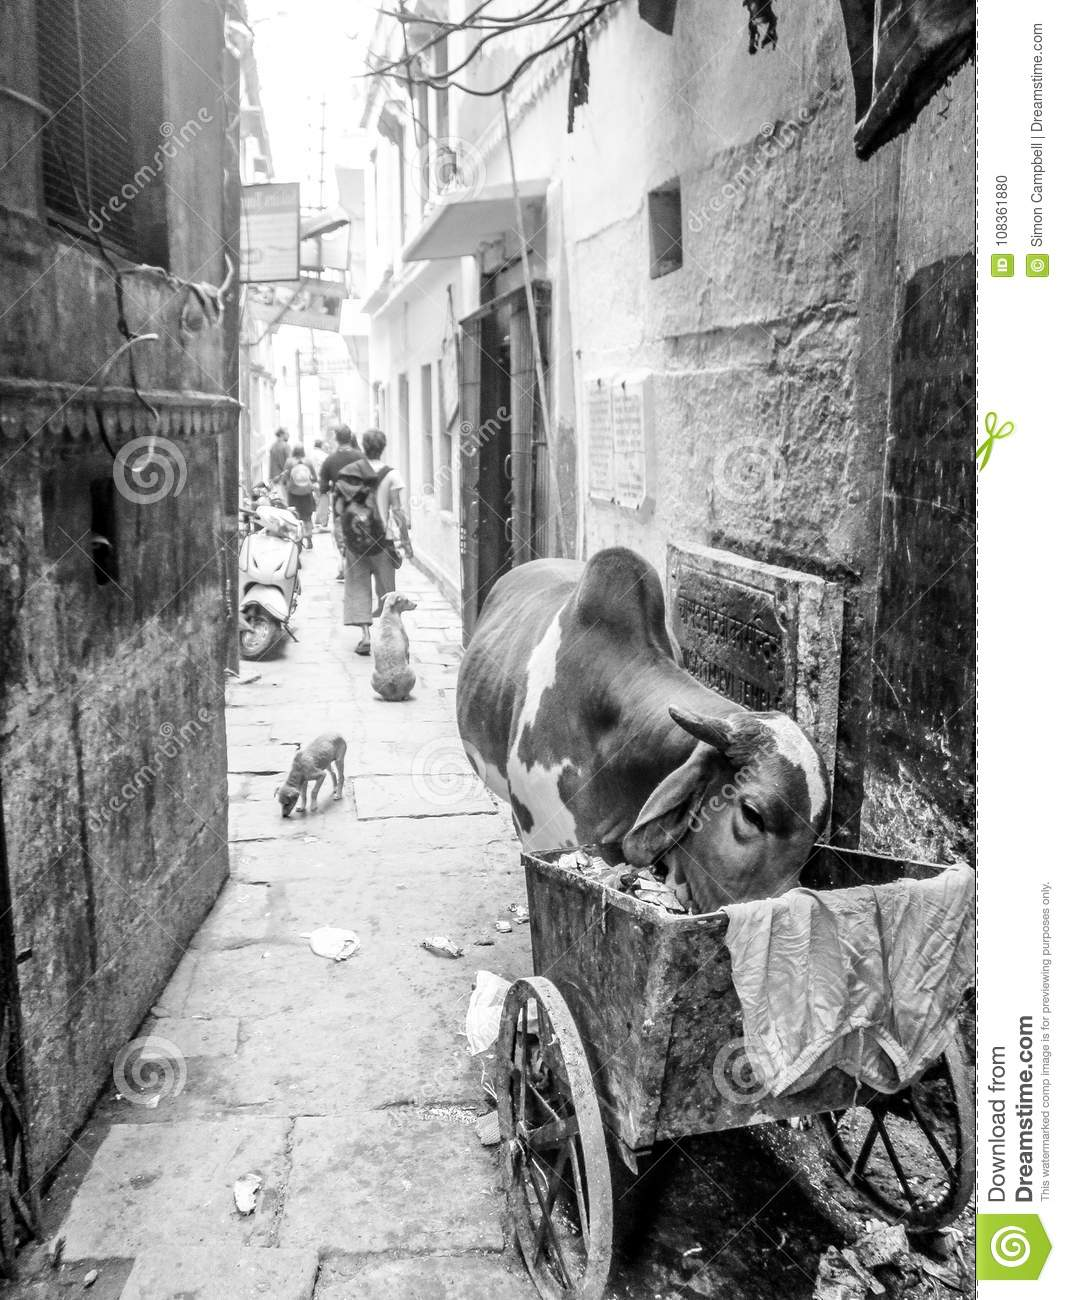 Animals eating garbage left by humans, City cow, Varanasi, India